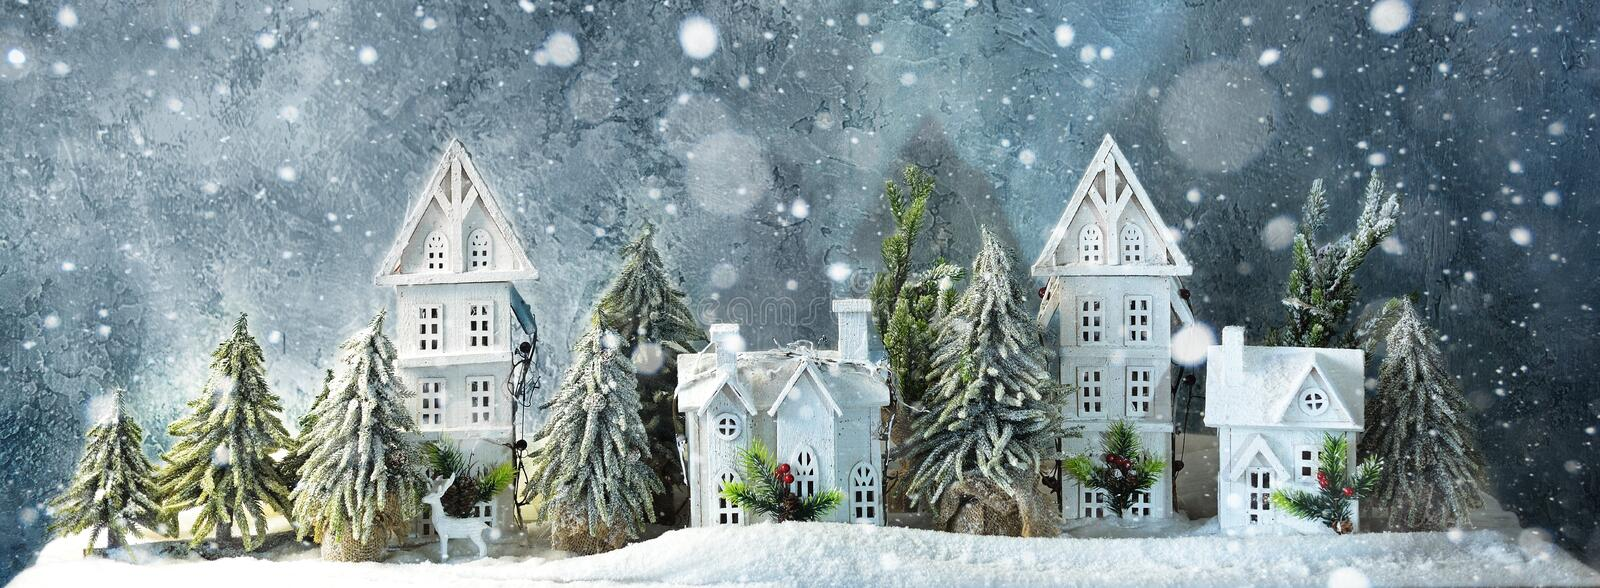 Frosty winter long banner wonderland forest with snowfall, houses and trees. Christmas greetings concept stock images